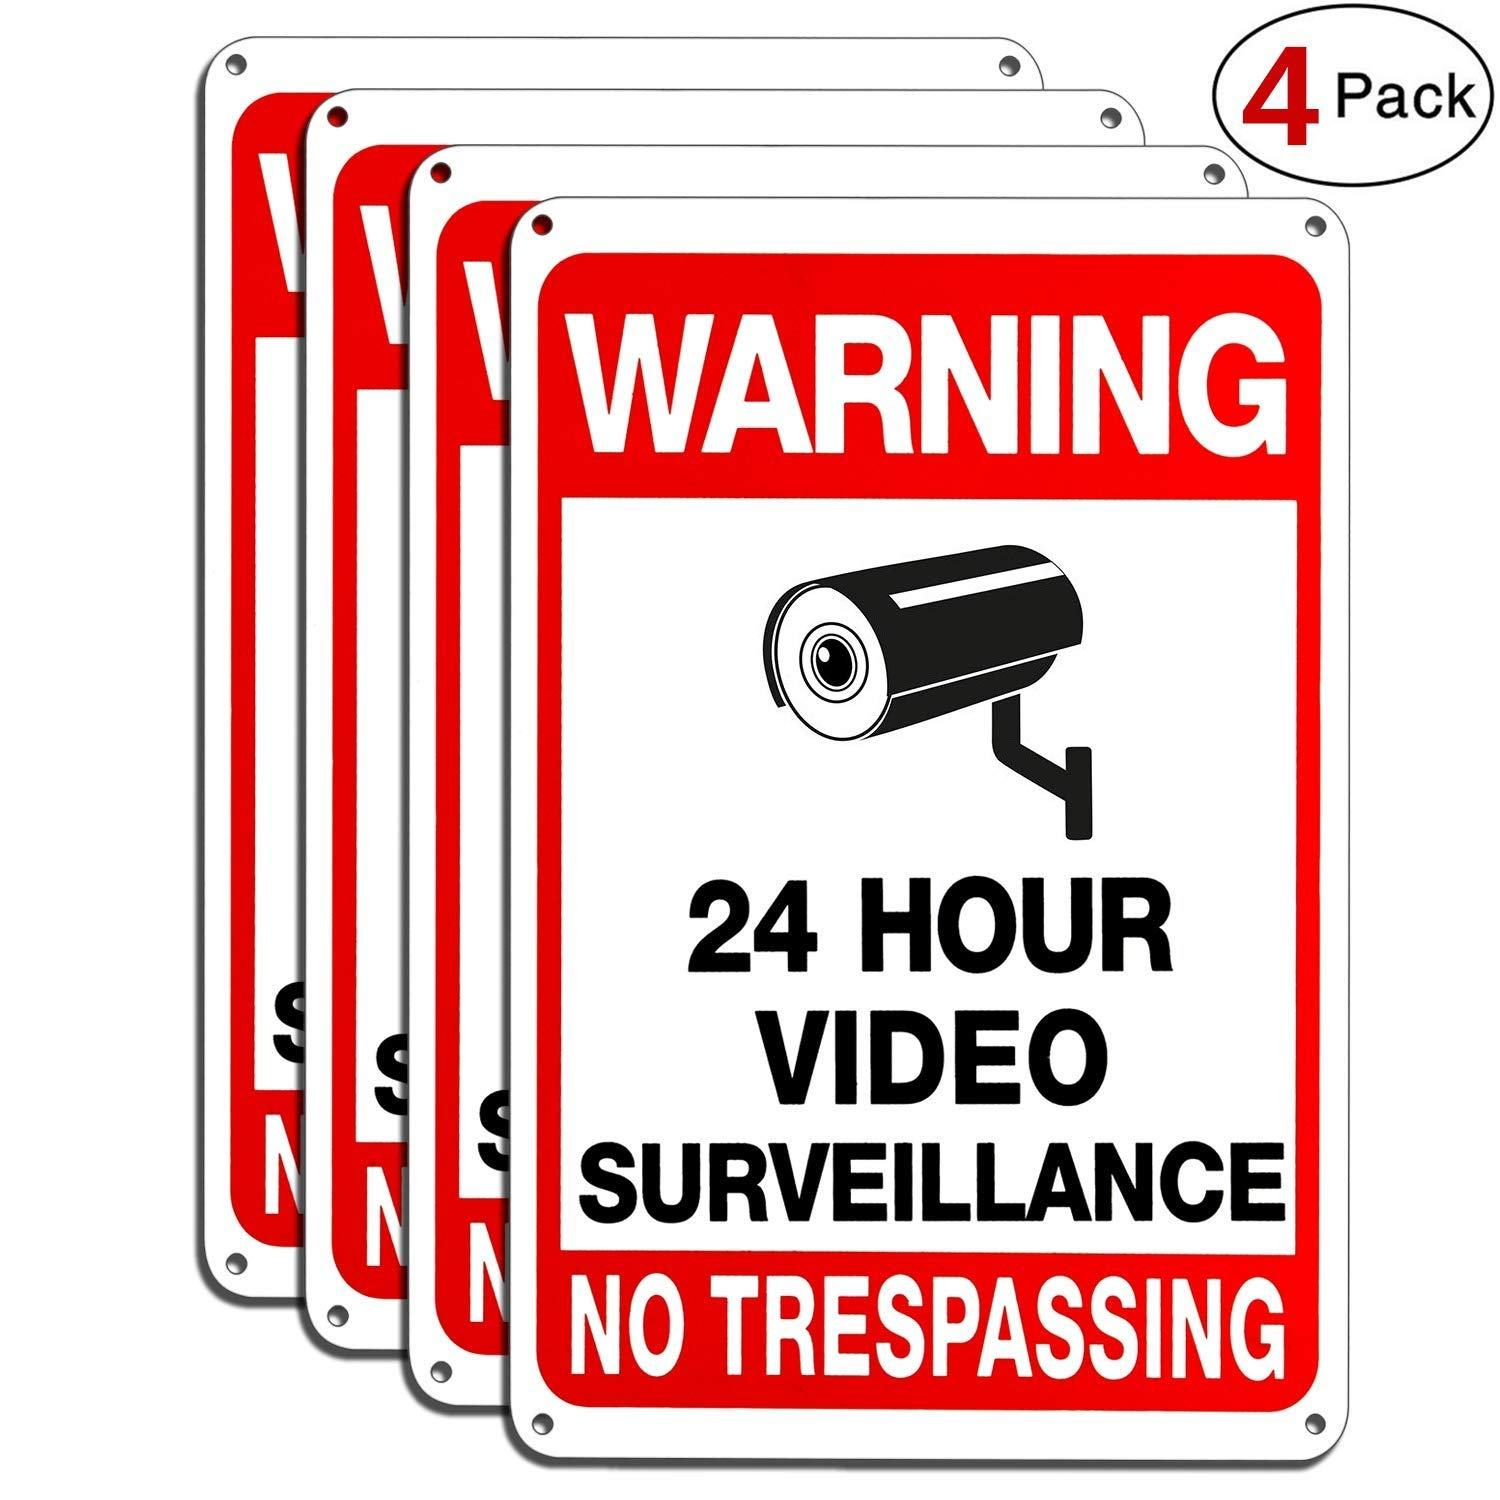 Vwarn 4-Pack Video Surveillance Sign, No Trespassing Metal Reflective Warning Sign, 10''x 7'' 0.40 Aluminum Indoor Or Outdoor Use for Home Business CCTV Security Camera,UV Protected & Waterproof